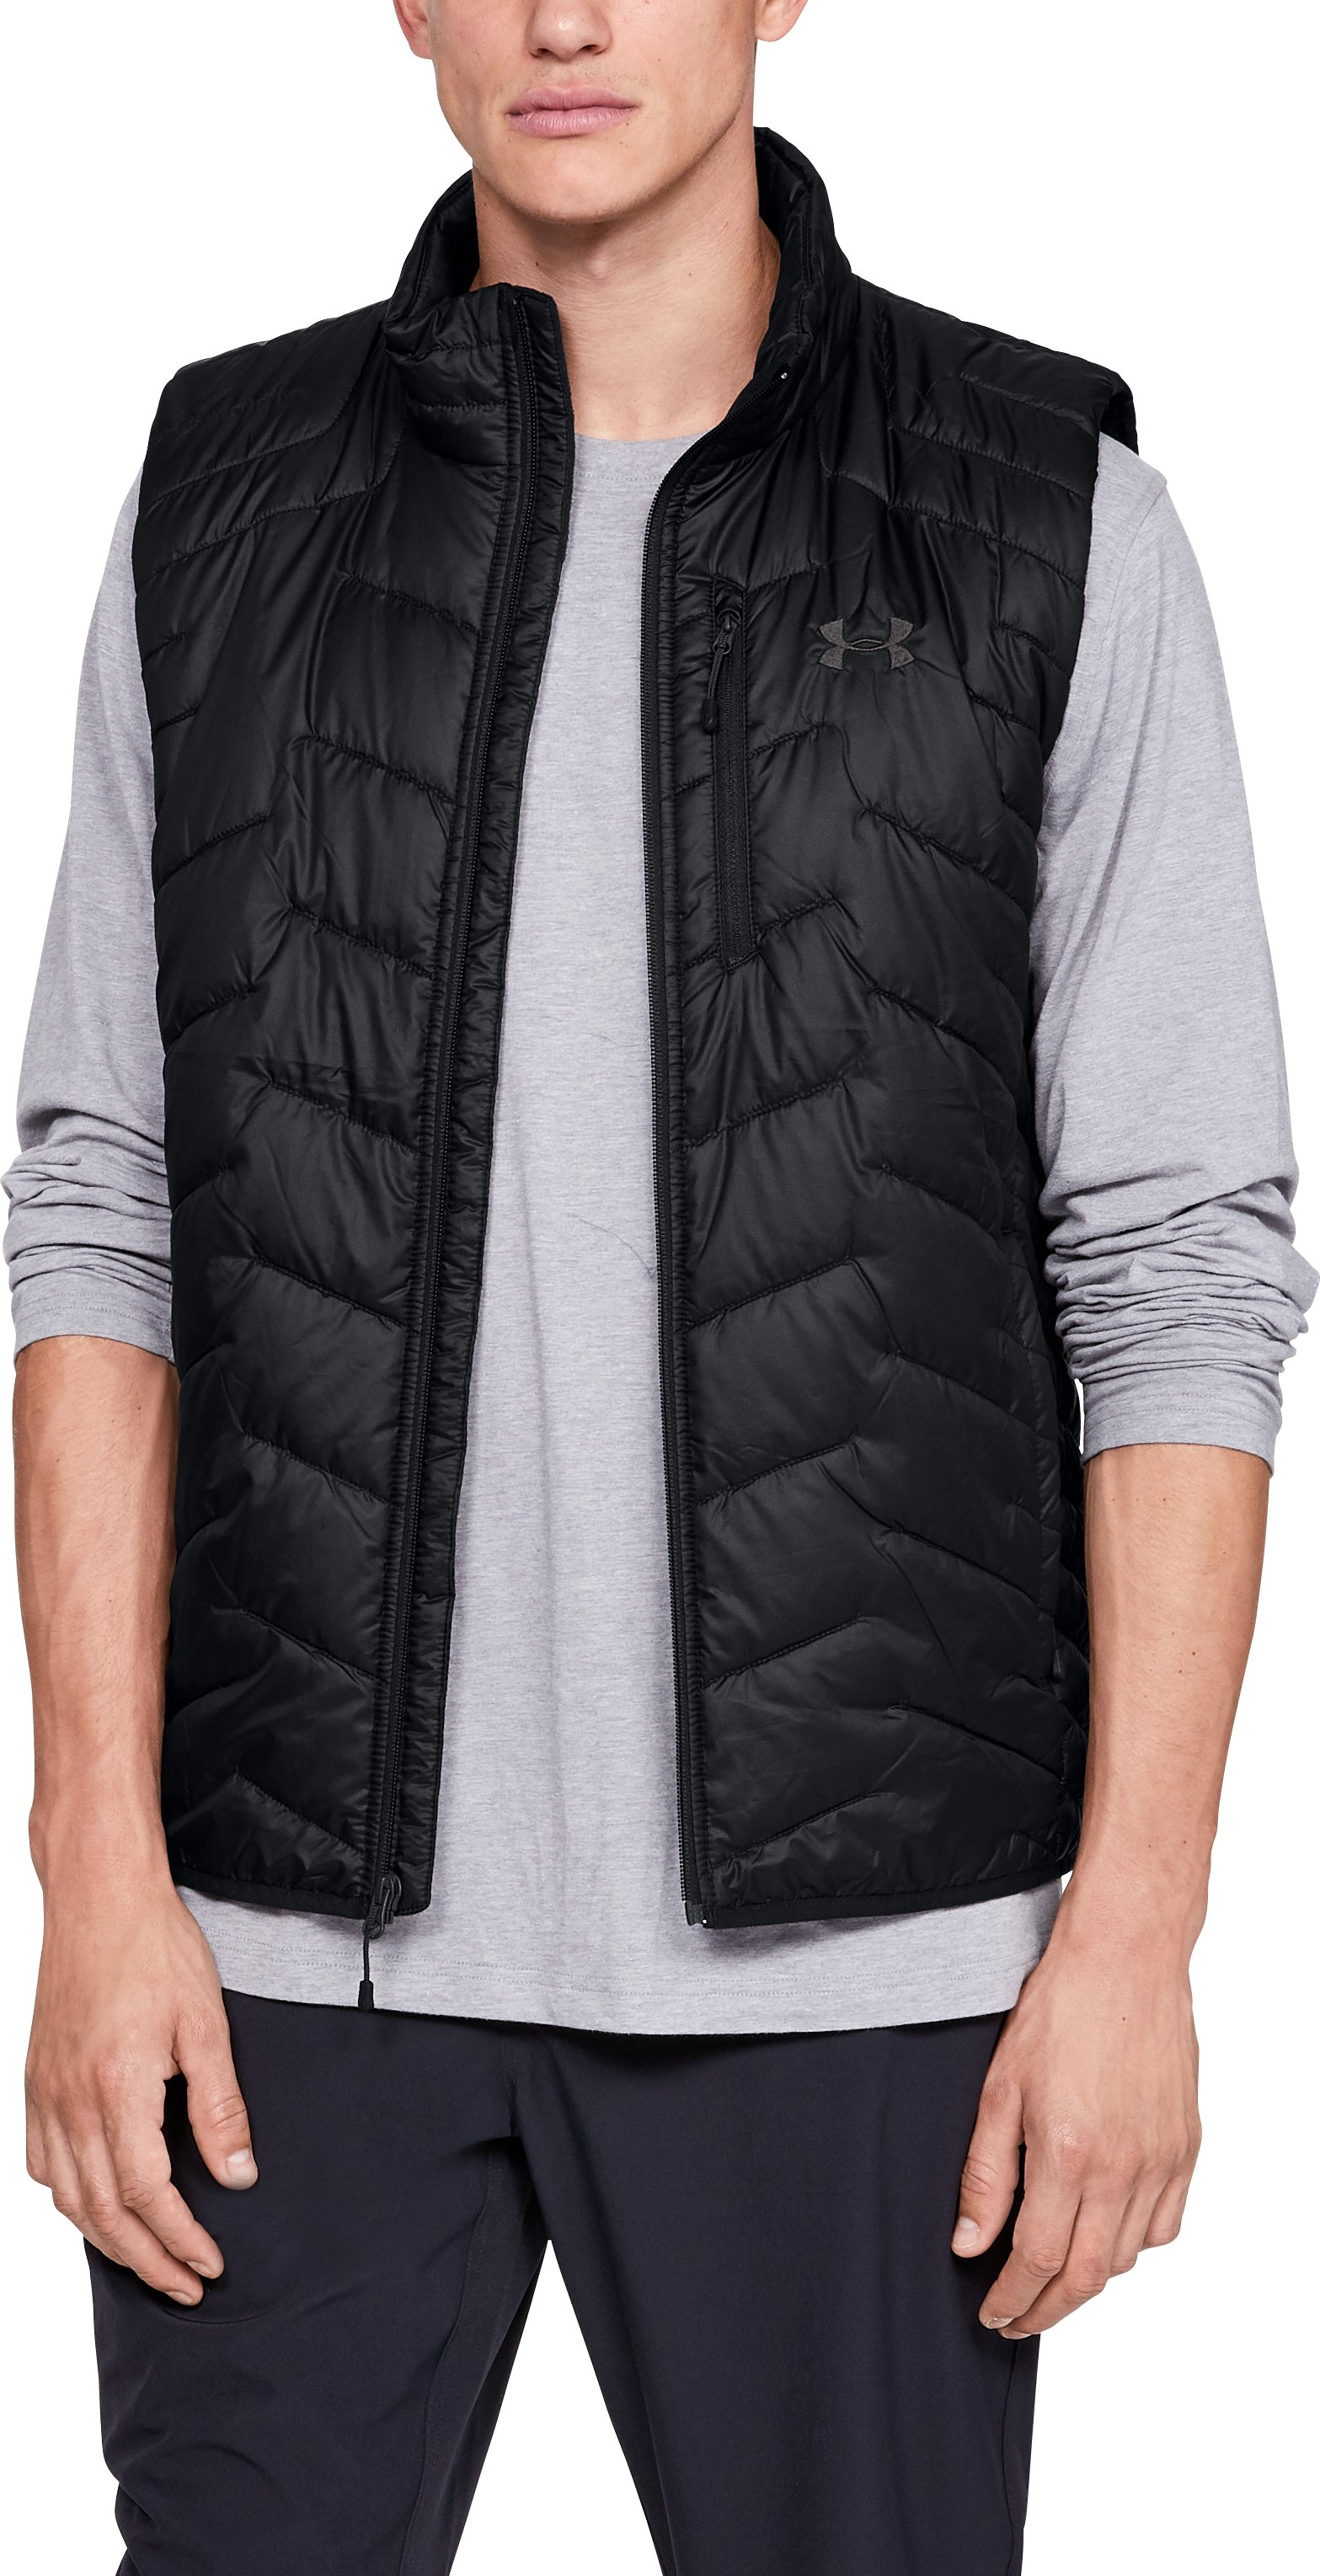 Men's ColdGear® Reactor Vest 4 Colors $130.00